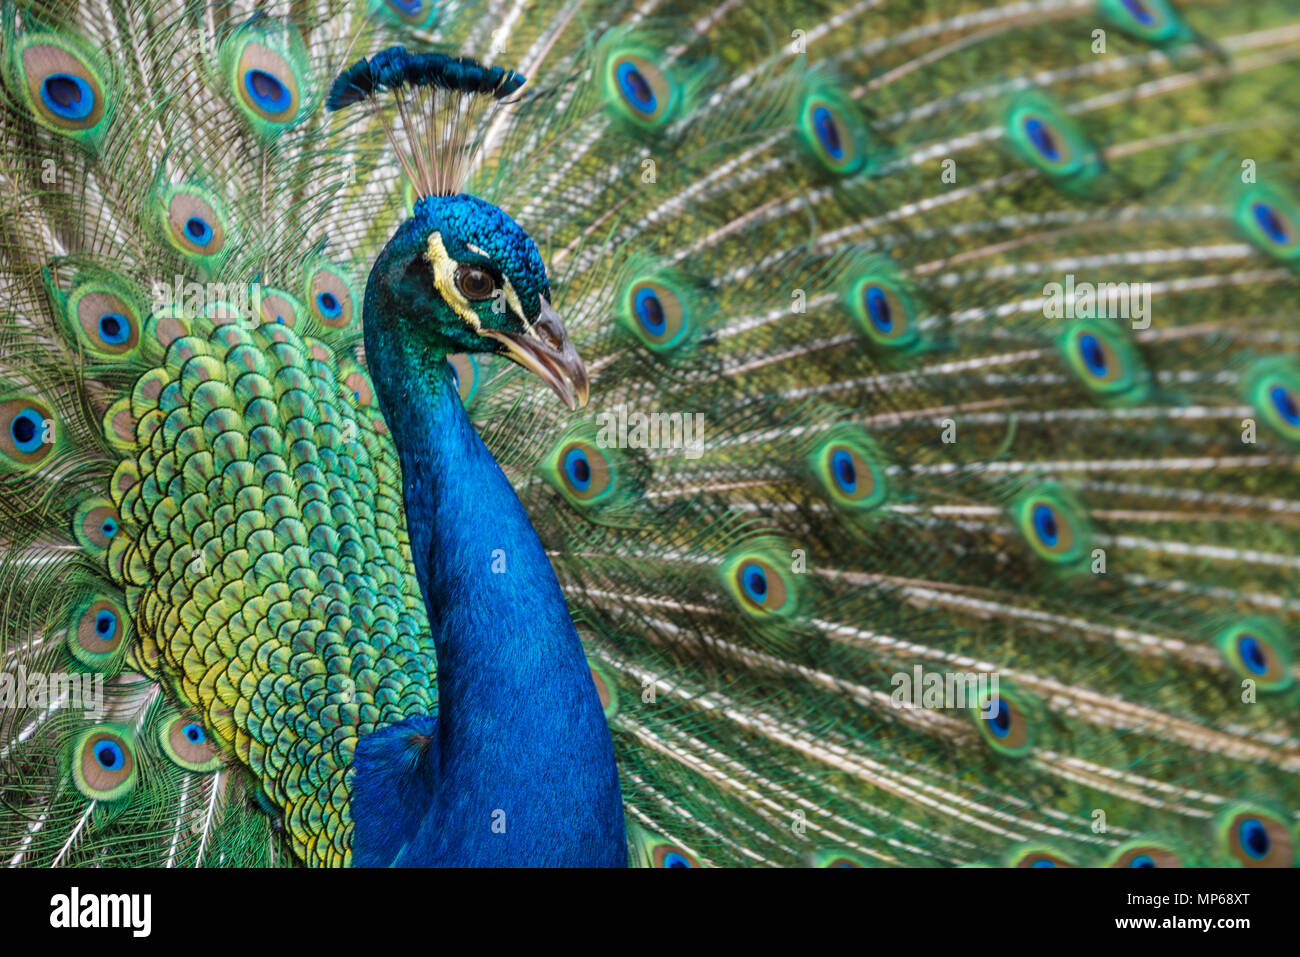 Indian blue peacock with vibrant iridescent plumage in full display at Ponce de Leon's Fountain of Youth Archaeological Park in St. Augustine, Florida. Stock Photo